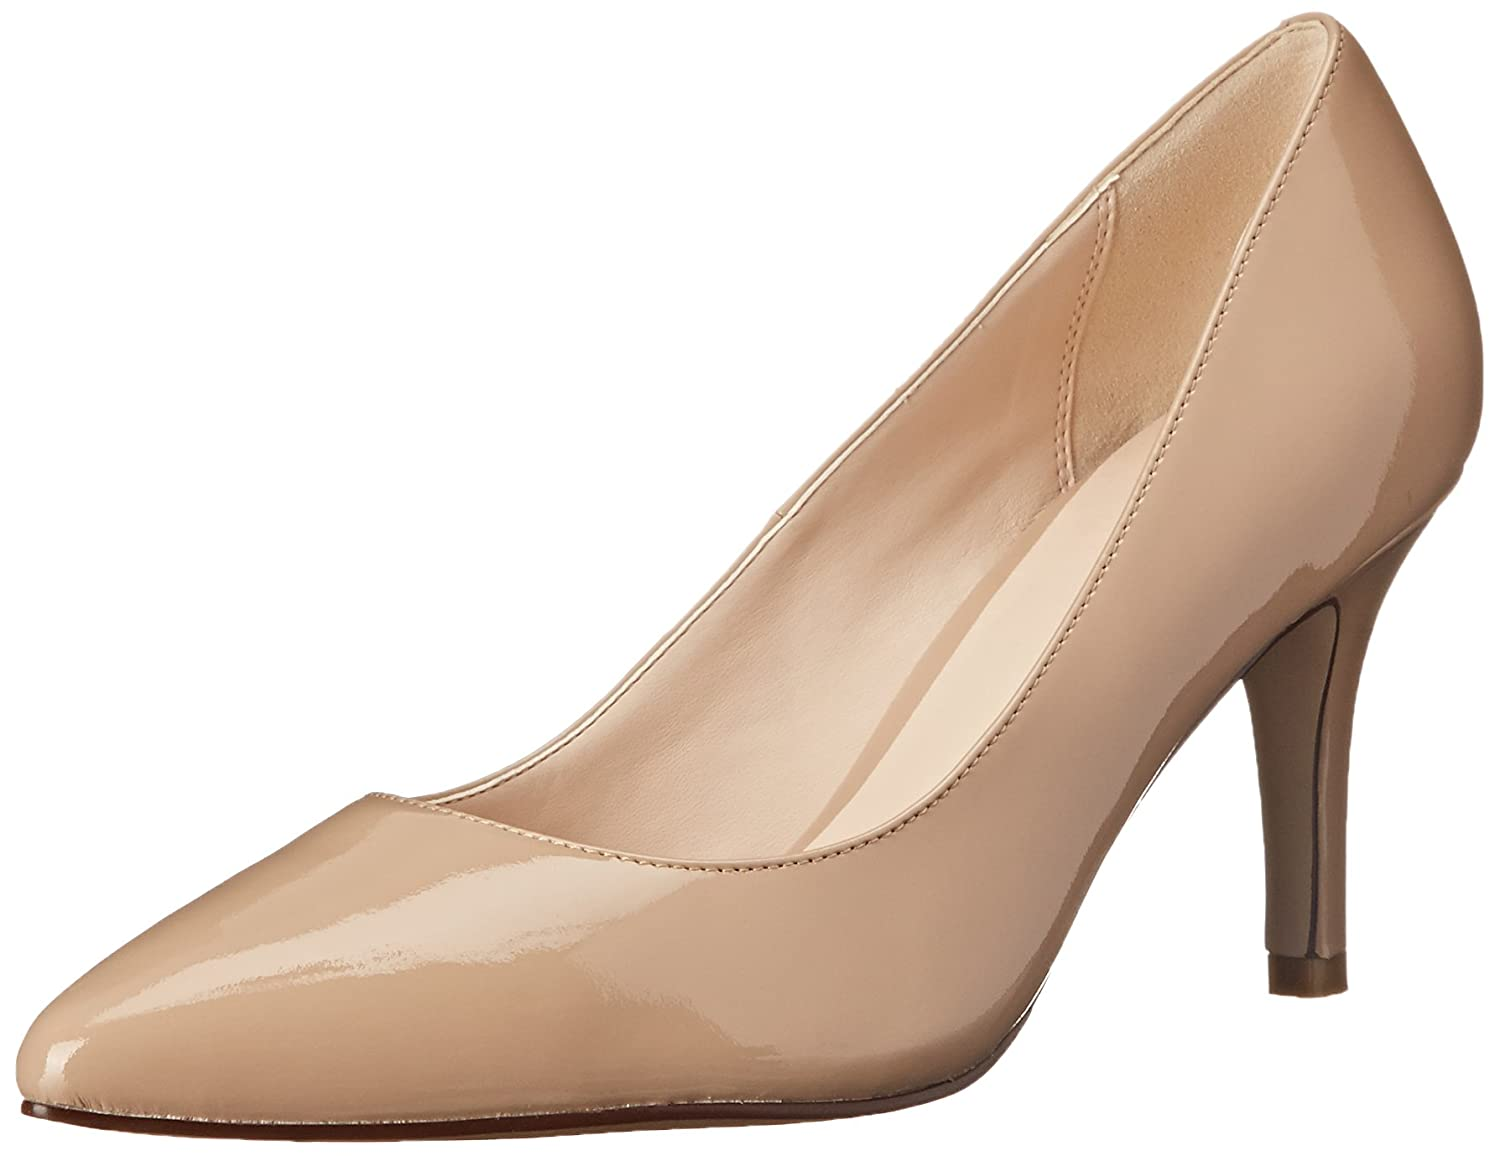 Cole Haan Women's Juliana 75 Dress Pump B00L8BC4RC 11 M US|Maple Sugar Patent